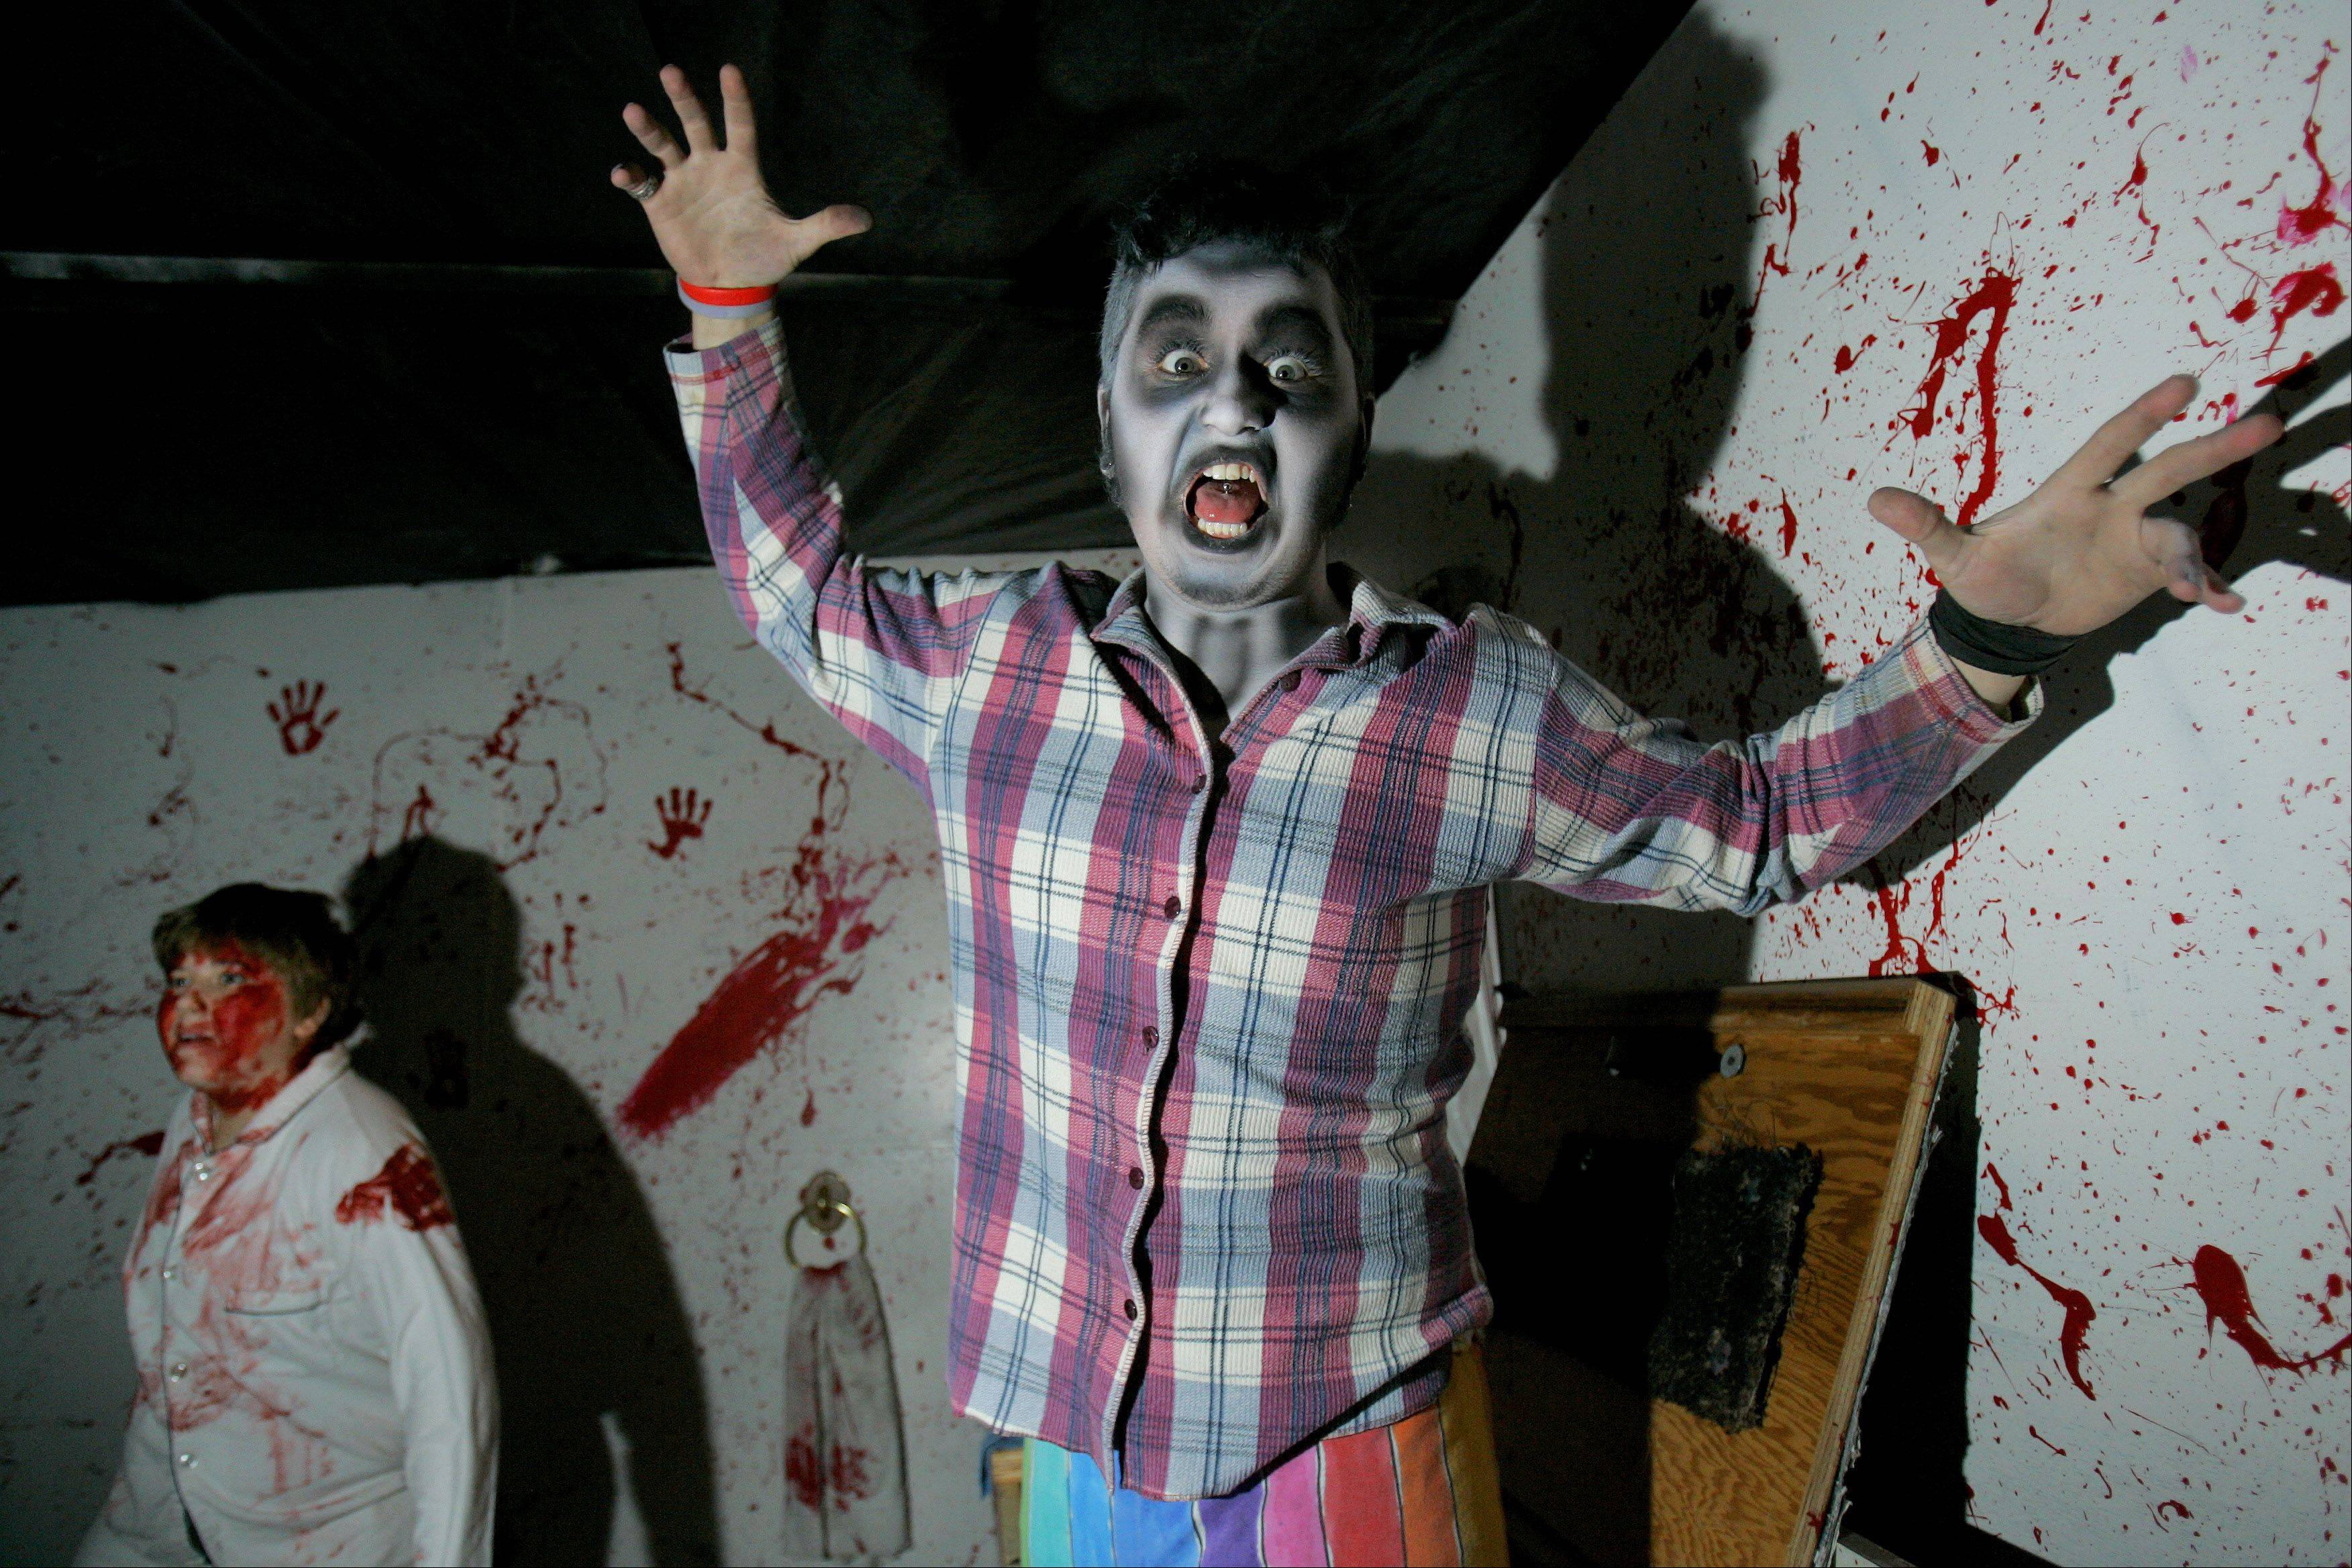 Forty years of haunting at the Lombard Jaycees' annual haunted house may come to an end if the group doesn't find a new location by Saturday, Oct. 1.